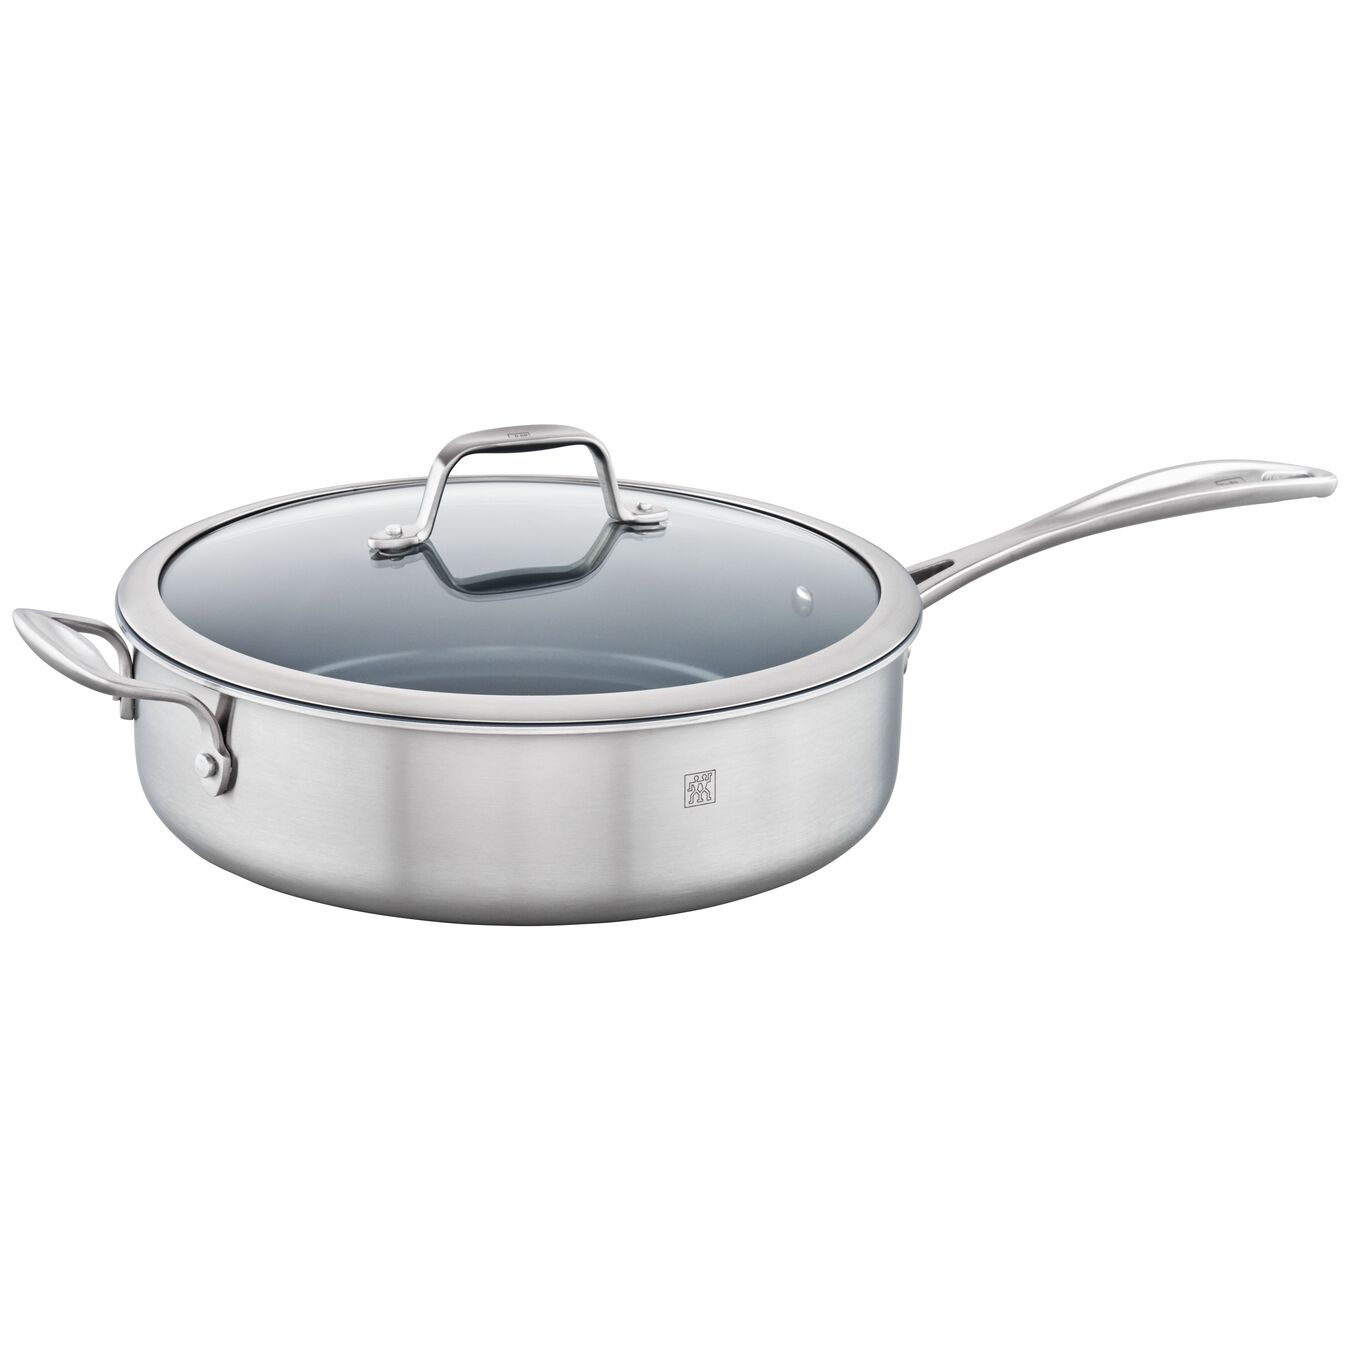 11-inch Saute pan, 18/10 Stainless Steel ,,large 4